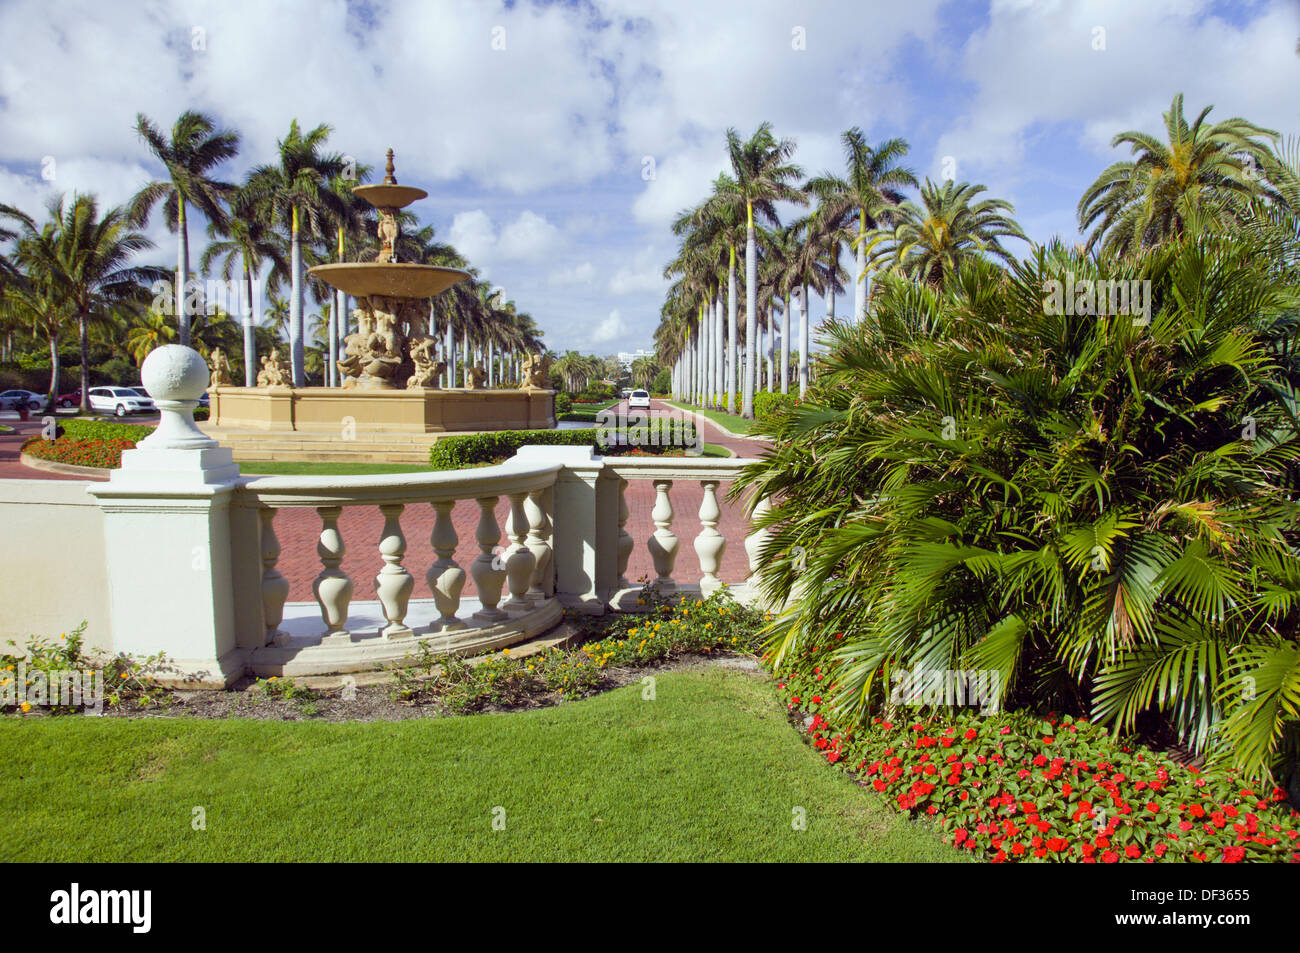 Unusual Hotels In Palm Beach Gardens Fl Contemporary - Landscaping ...